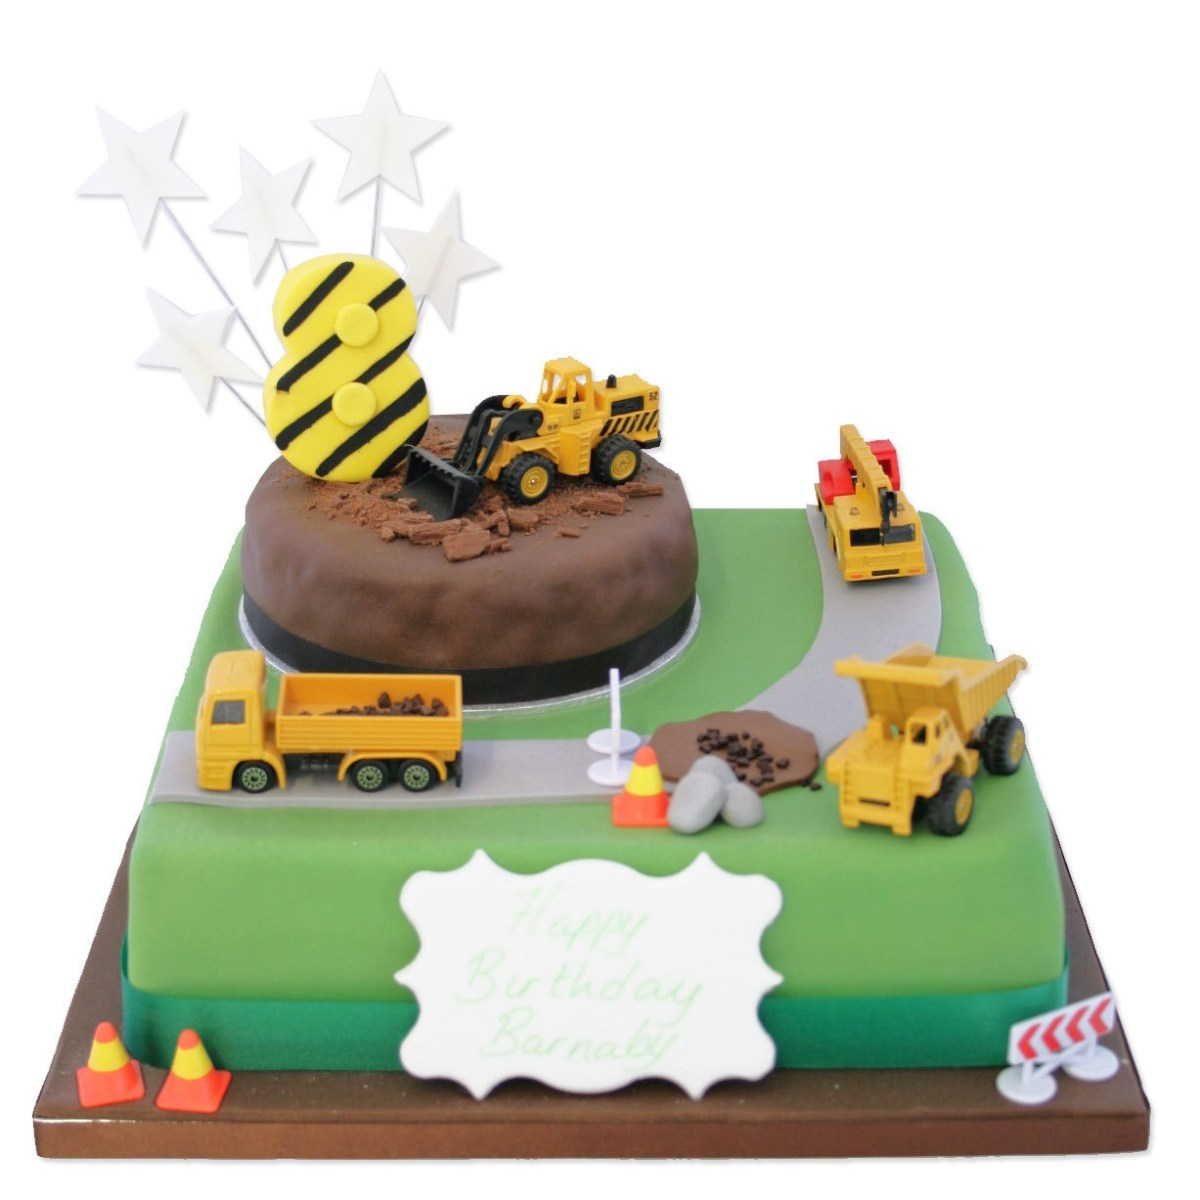 Stupendous Girls Birthday Cake Ideas Childrens Cakes Boys Birthday Cakes Funny Birthday Cards Online Alyptdamsfinfo